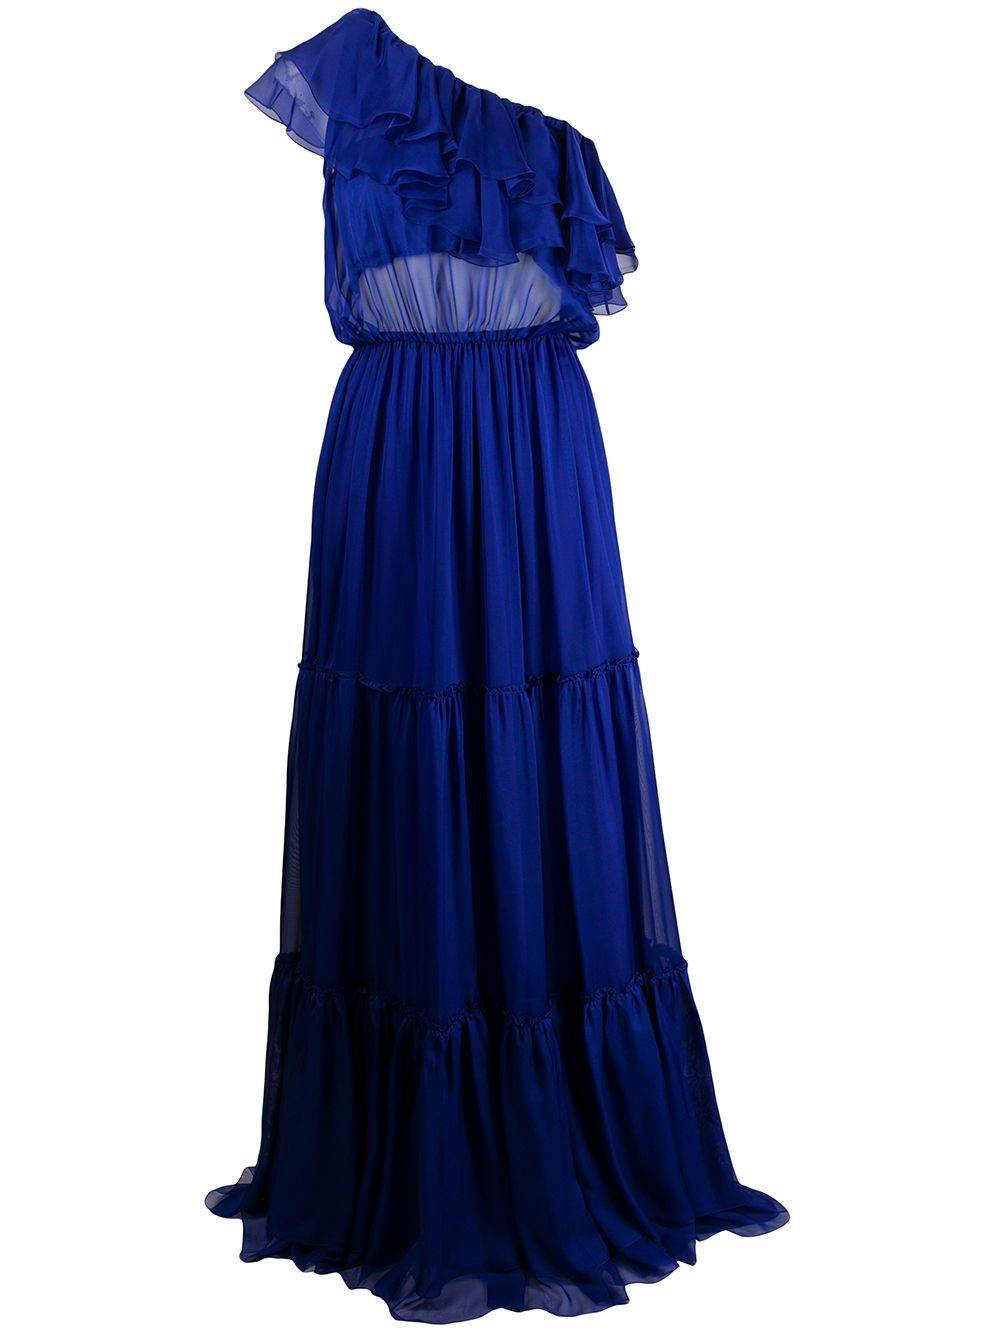 Federica Tosi BLUE SILK DRESS